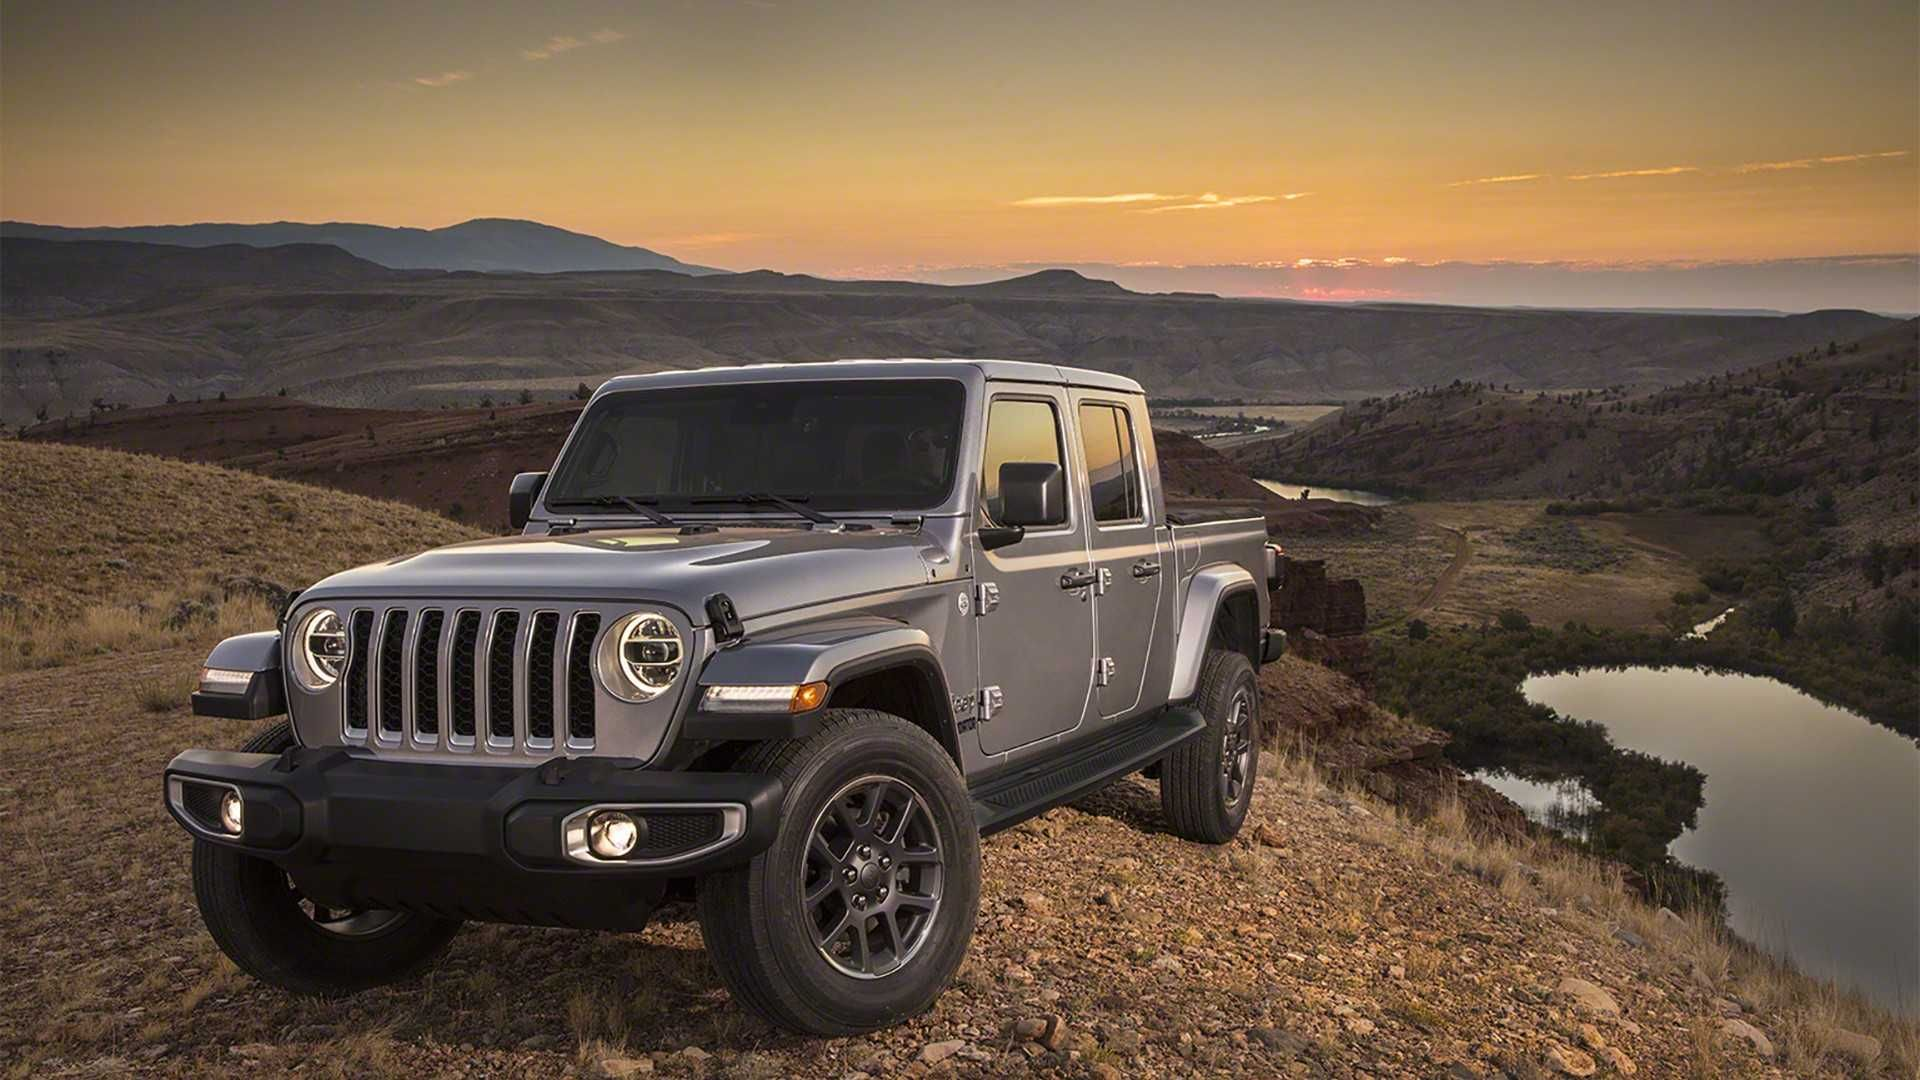 The New Jeep Gladiator Is Midsize Pickup Truck That Combines Everything Good About The Fun And Funky Wr Jeep Gladiator Wrangler Truck Wrangler Pickup